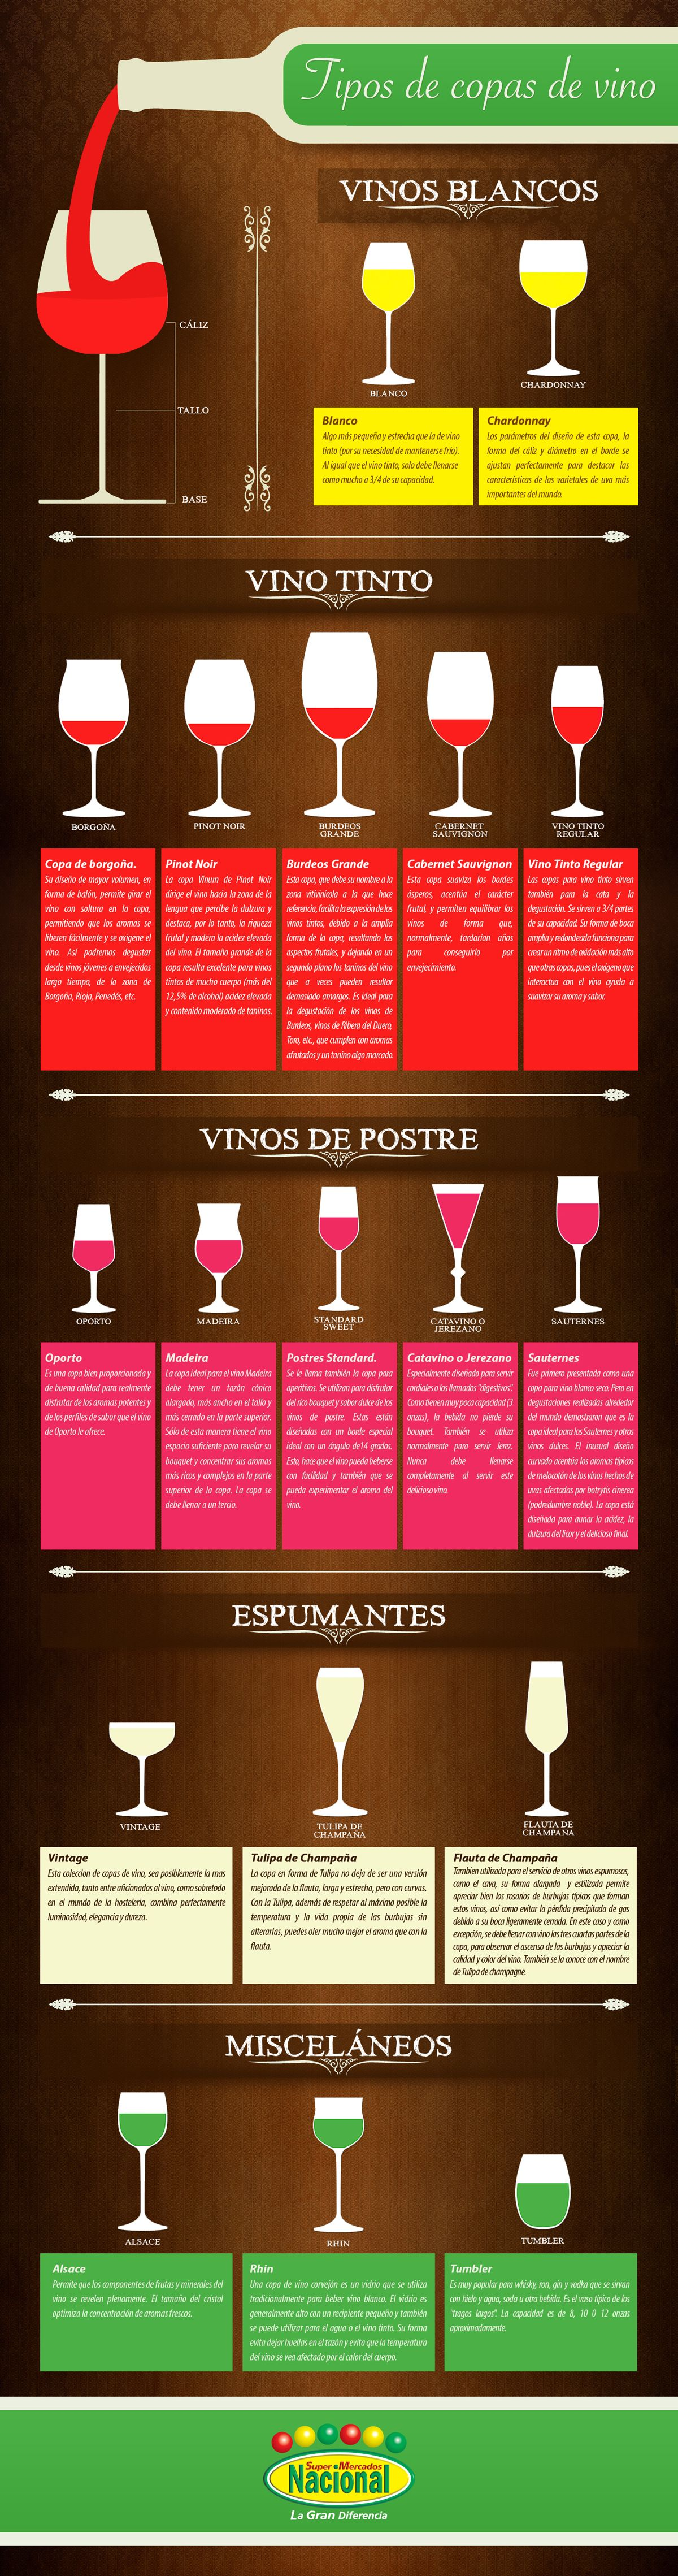 Pin By Mariano Azcarraga On Bebidas Wine Recipes Wine Drinks Wine Taster